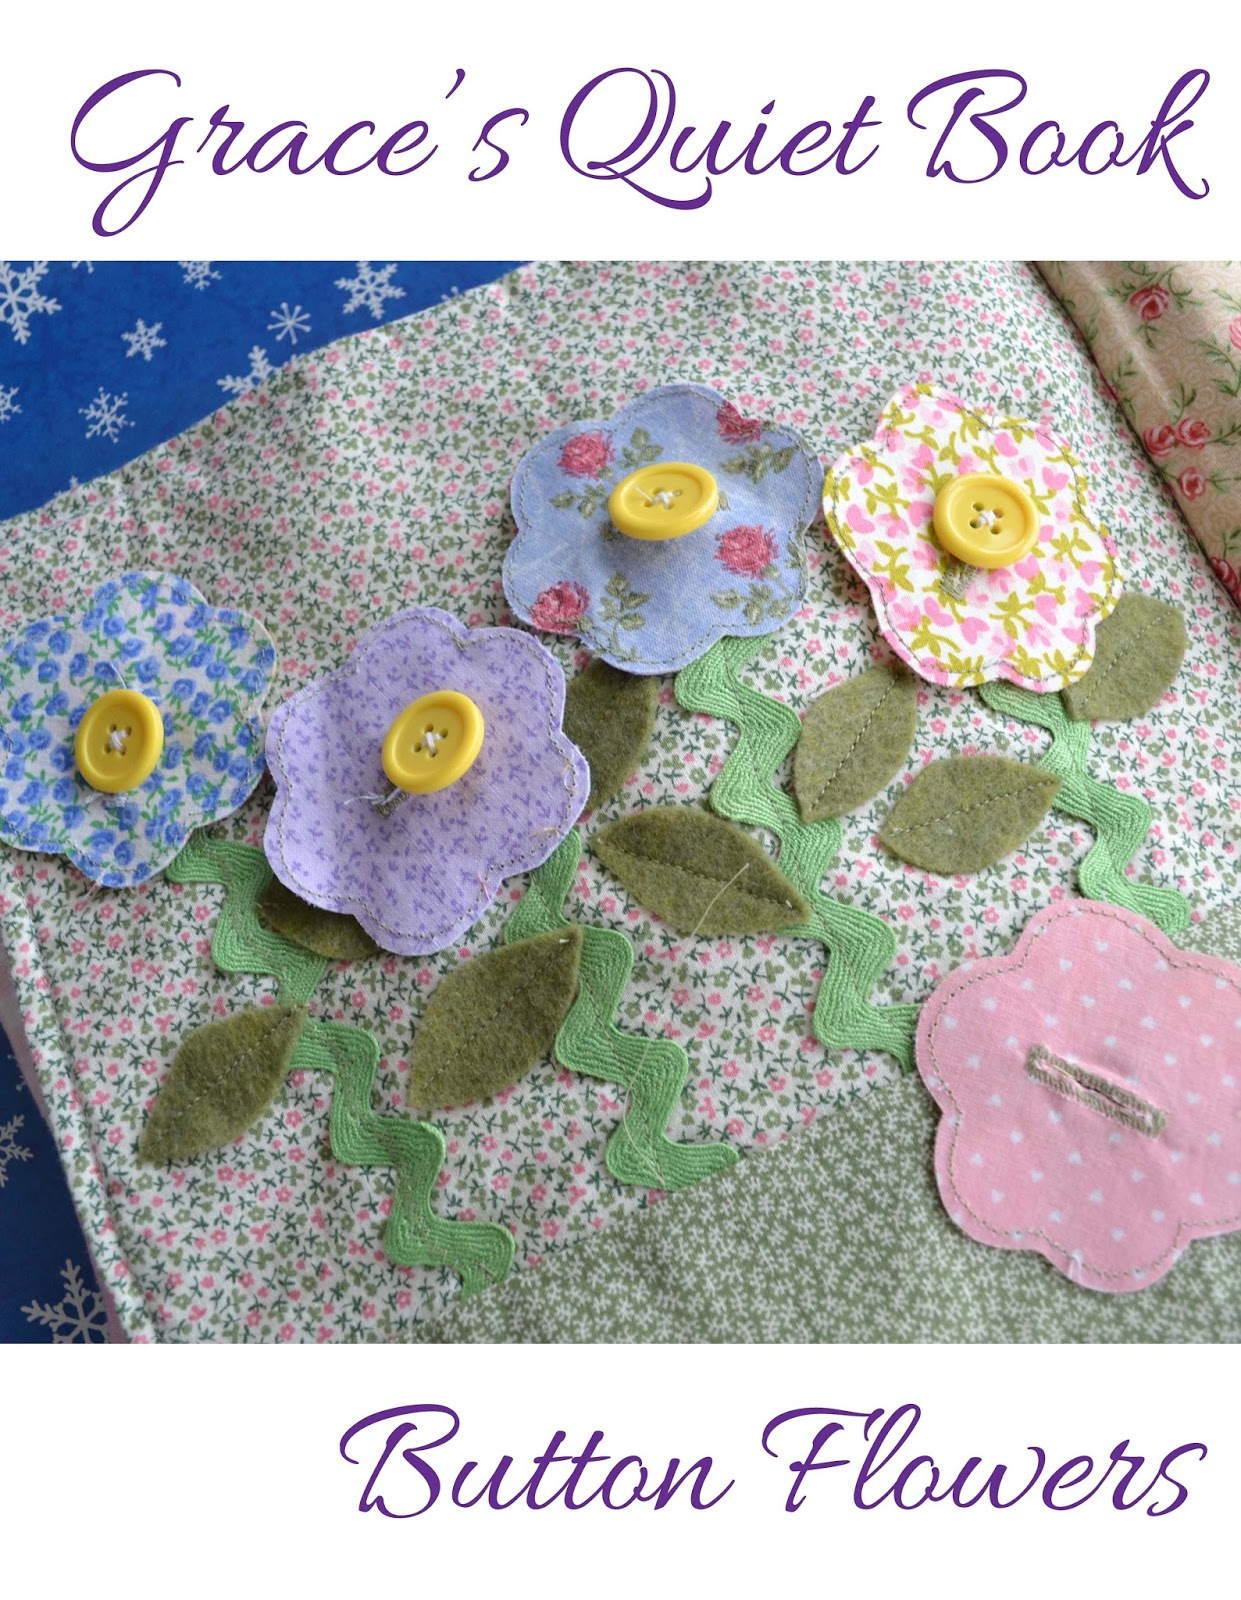 Grace's Quiet Book Button Flowers